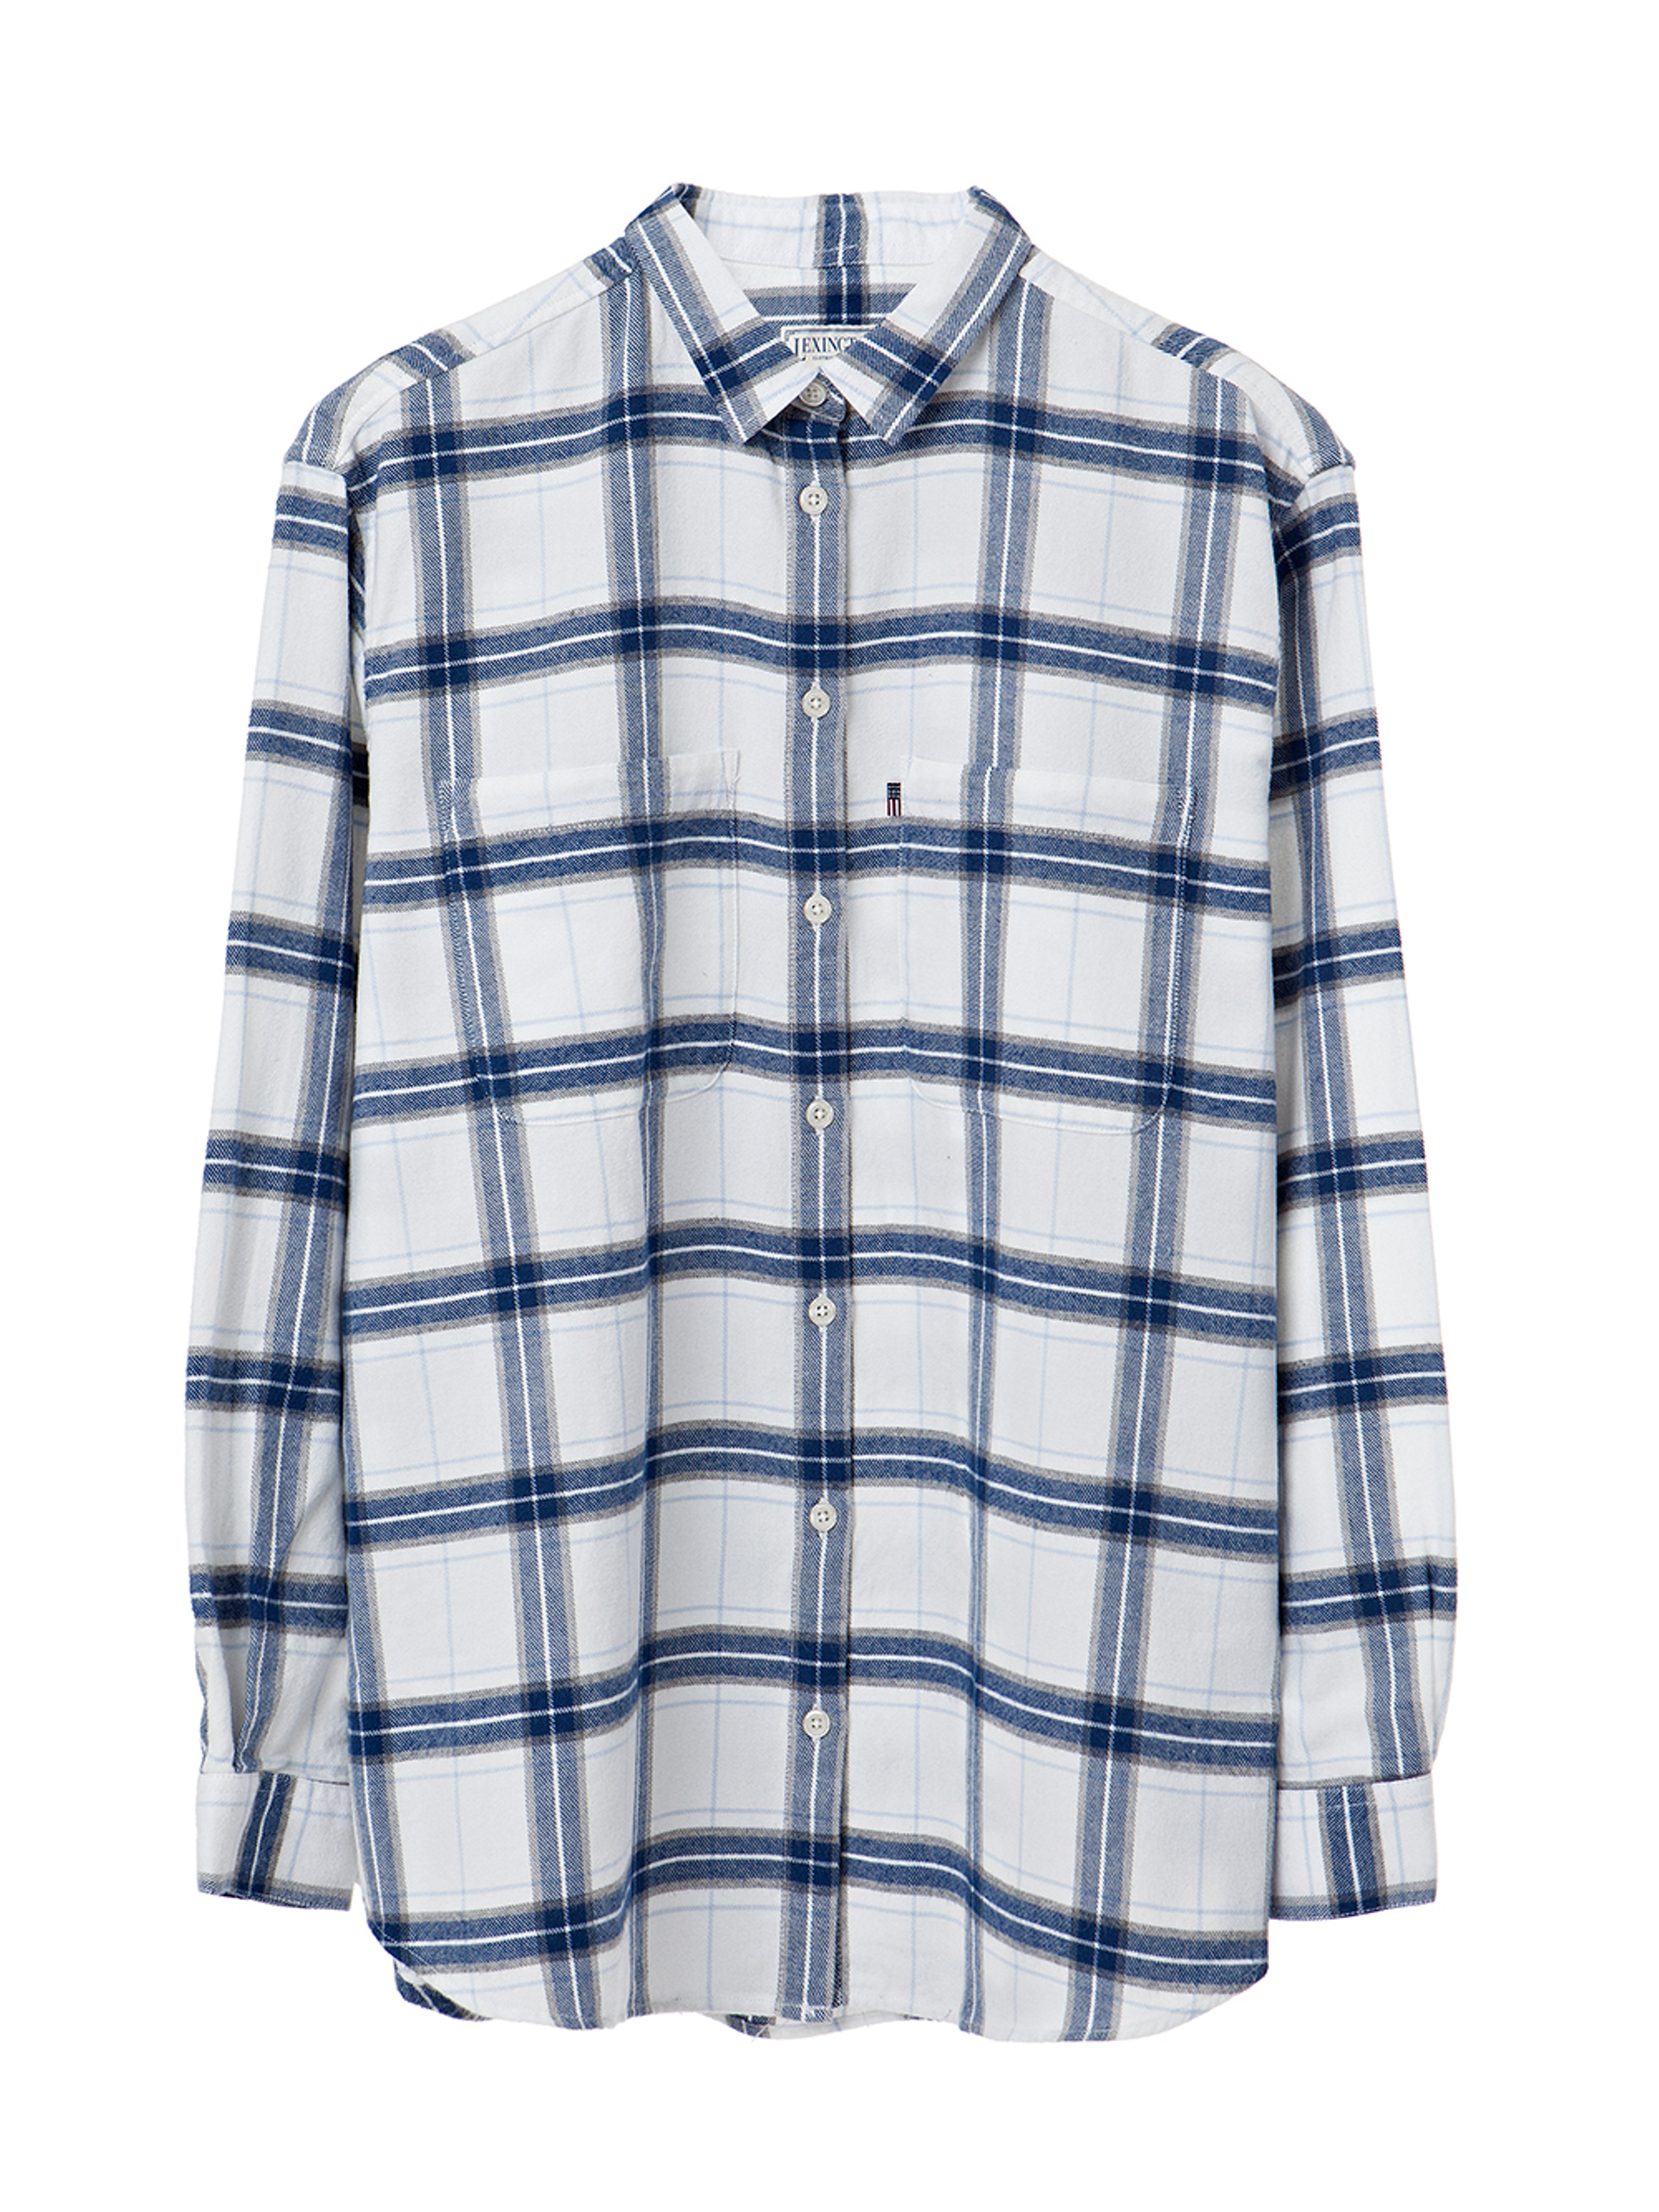 Zaira Flannel Shirt, Blue/White Check